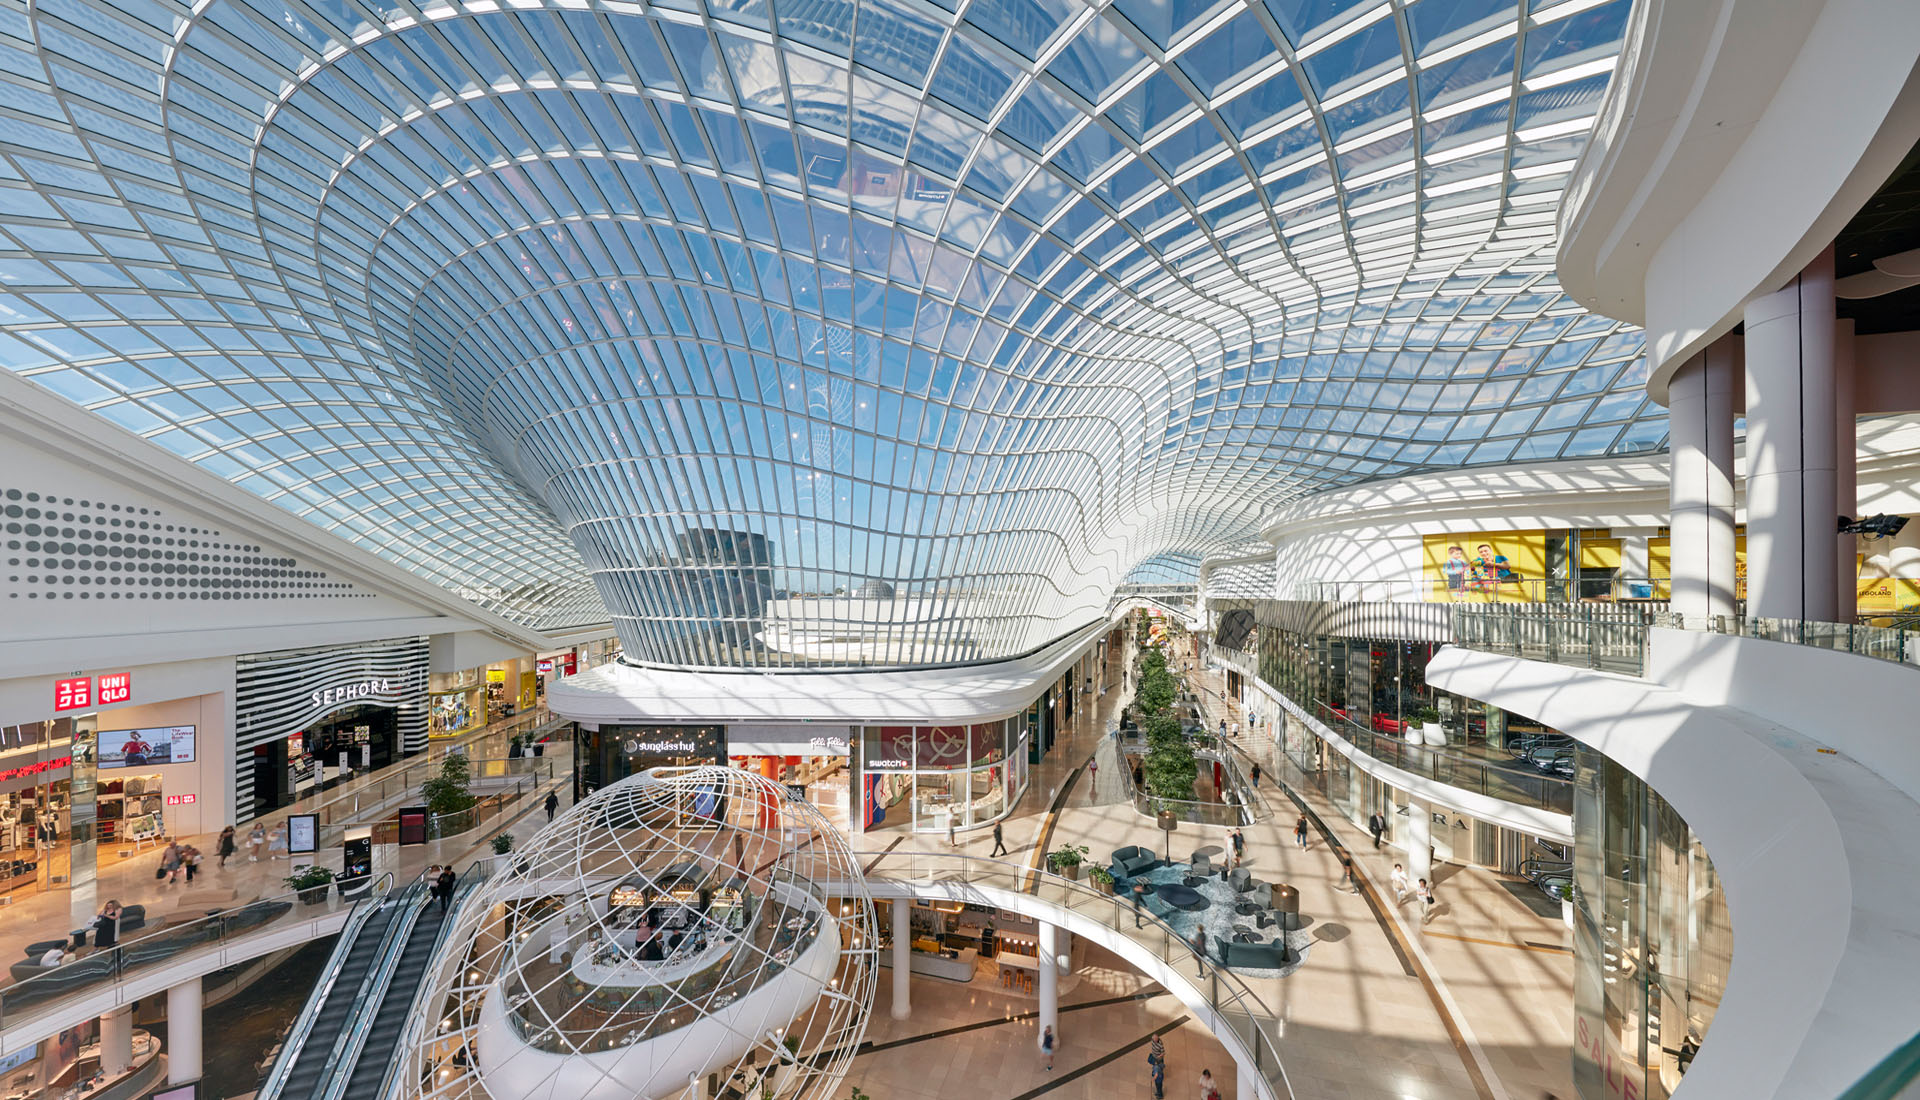 Chadstone Shopping Centre – Glasdach